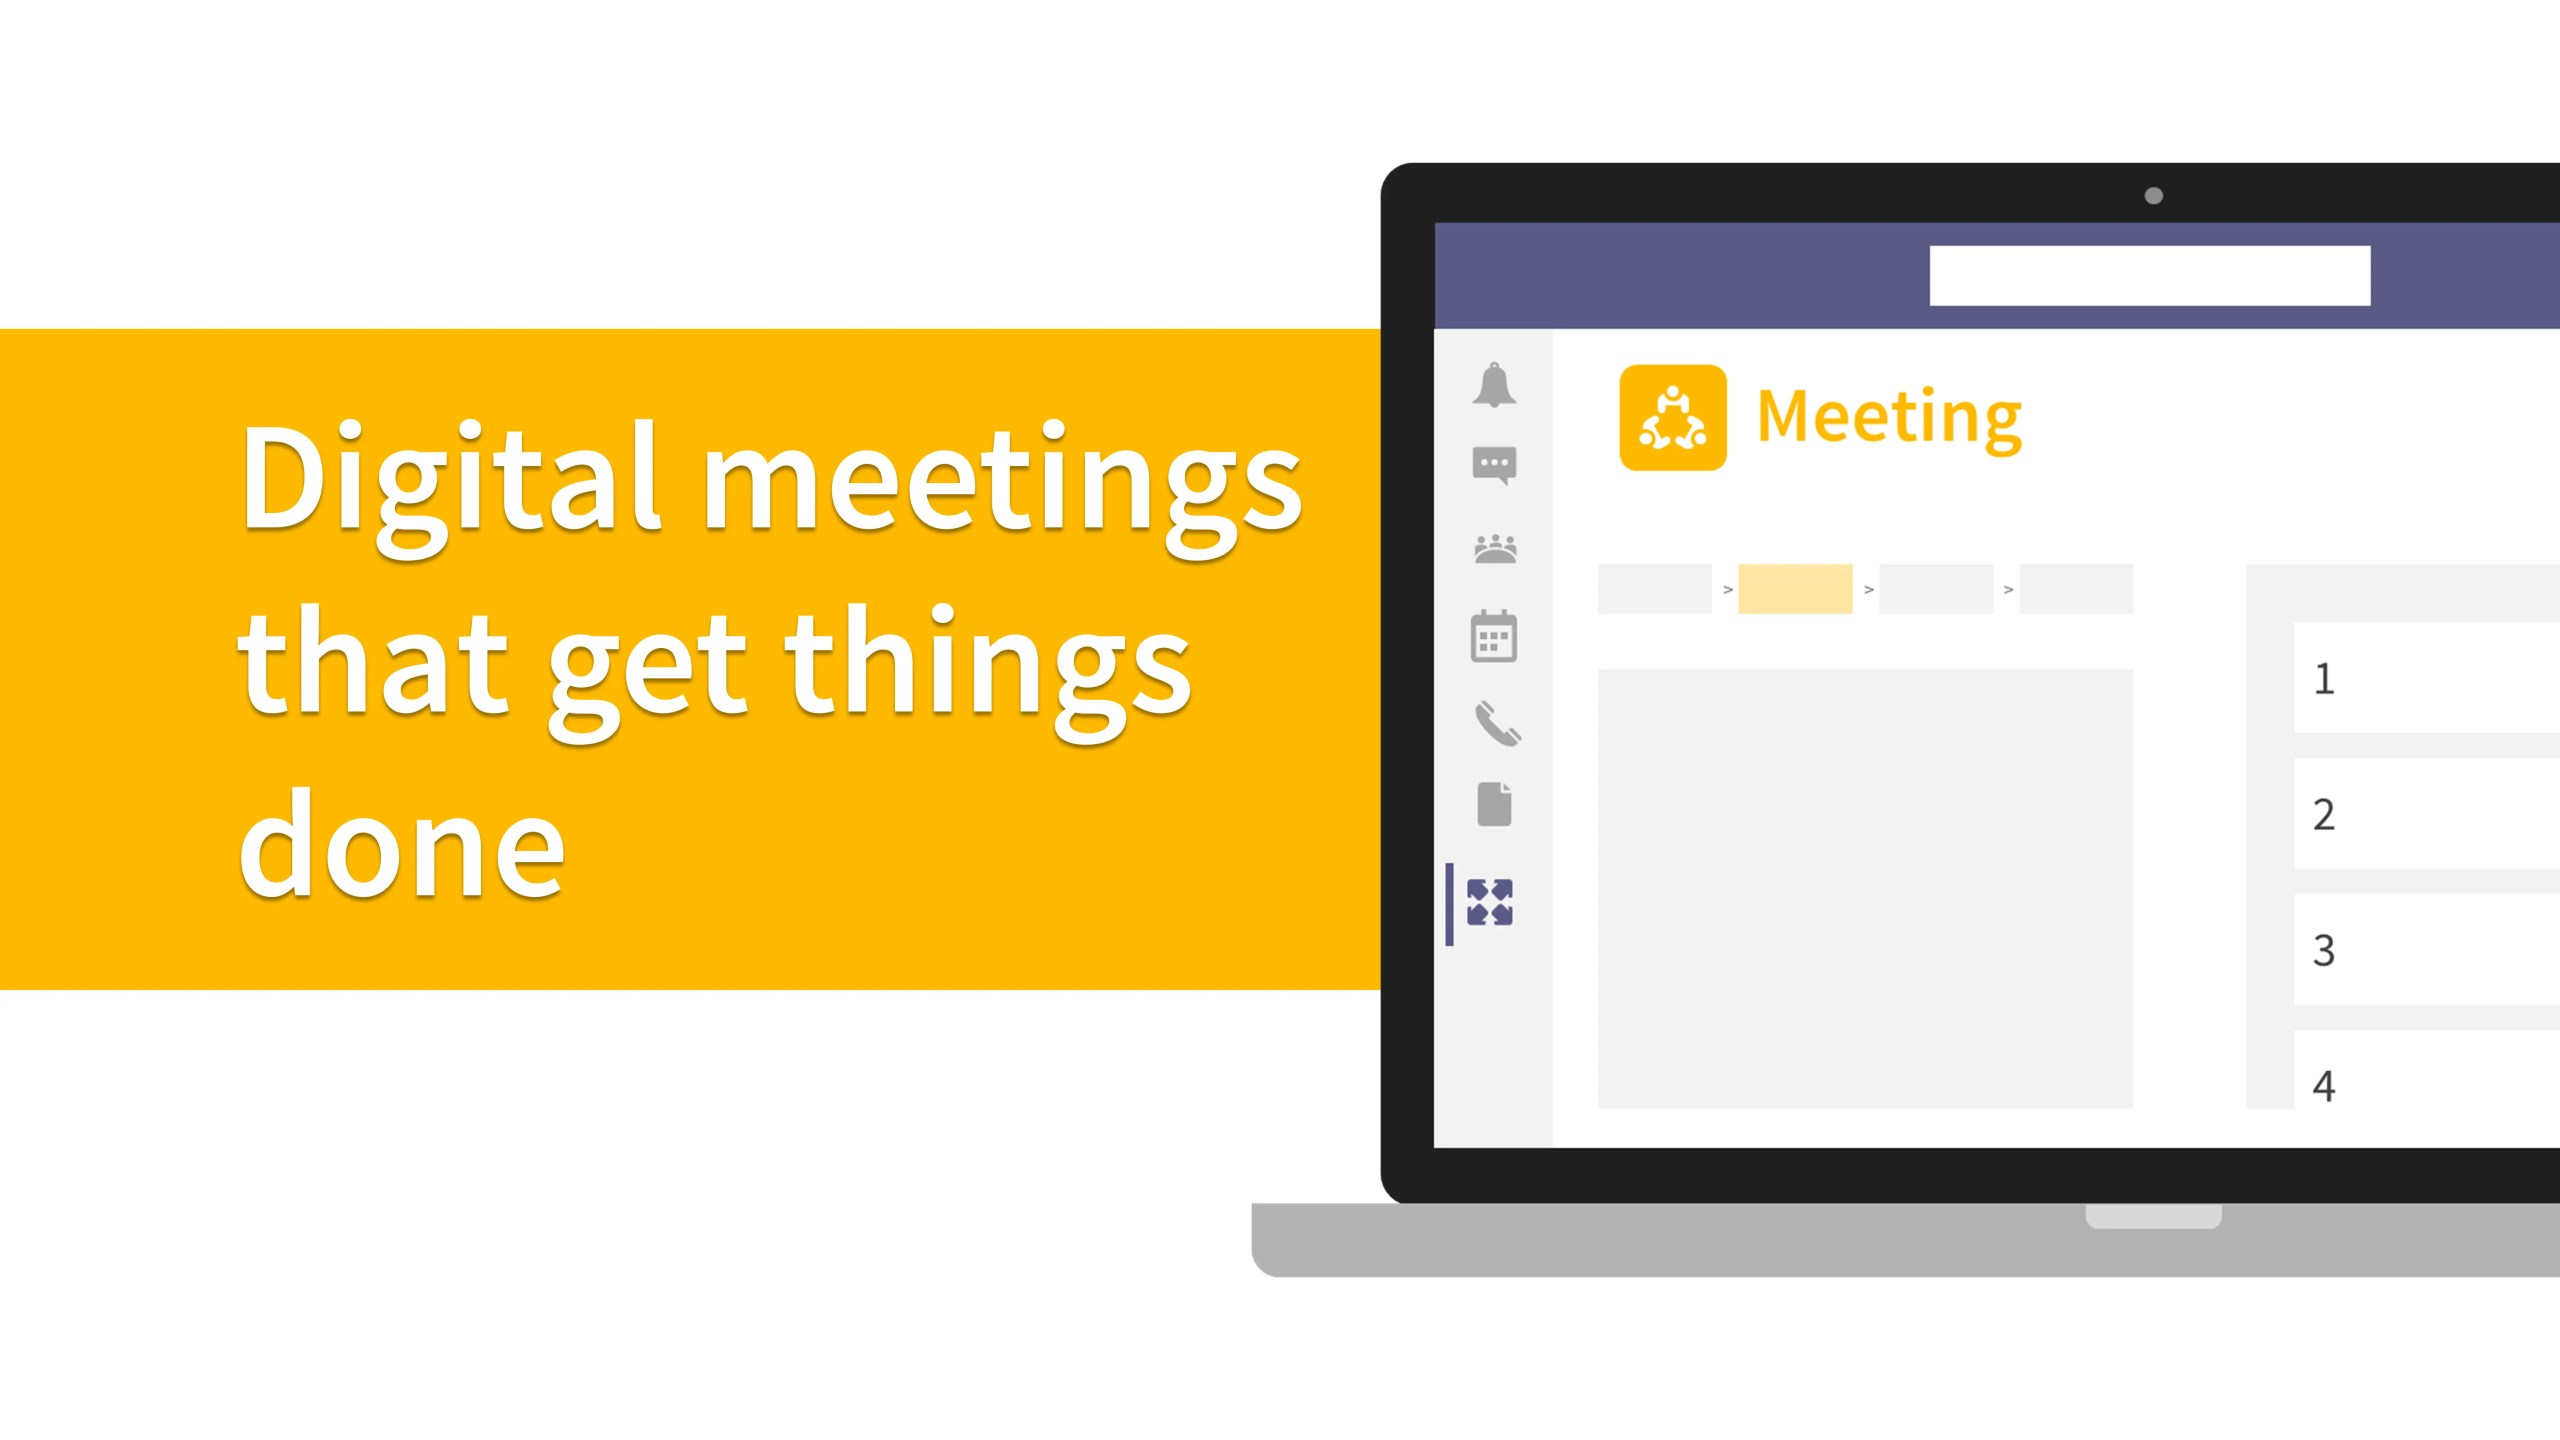 digital meetings that get things done